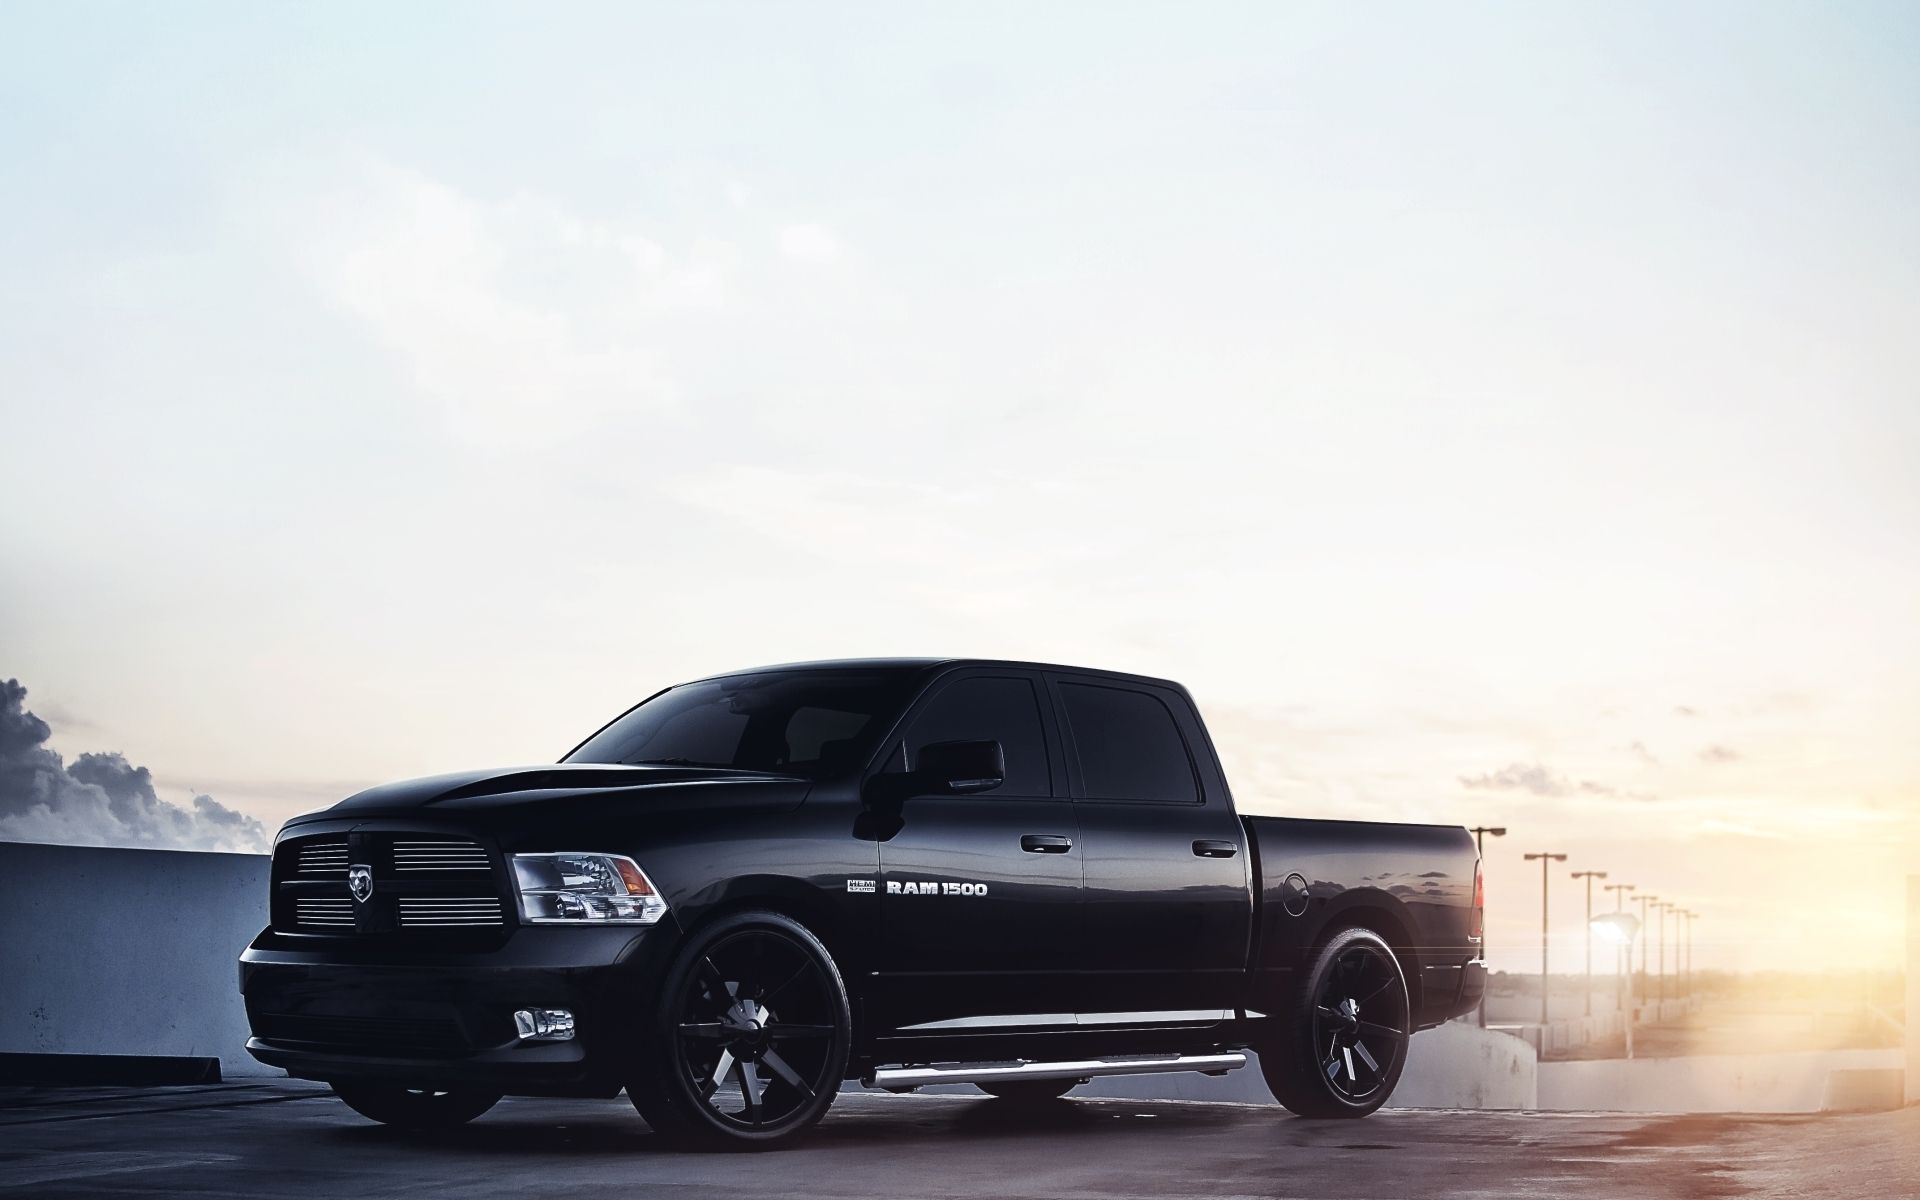 Dodge ram hd wallpapers wide 2016 http hdwallpaperswide co dodge